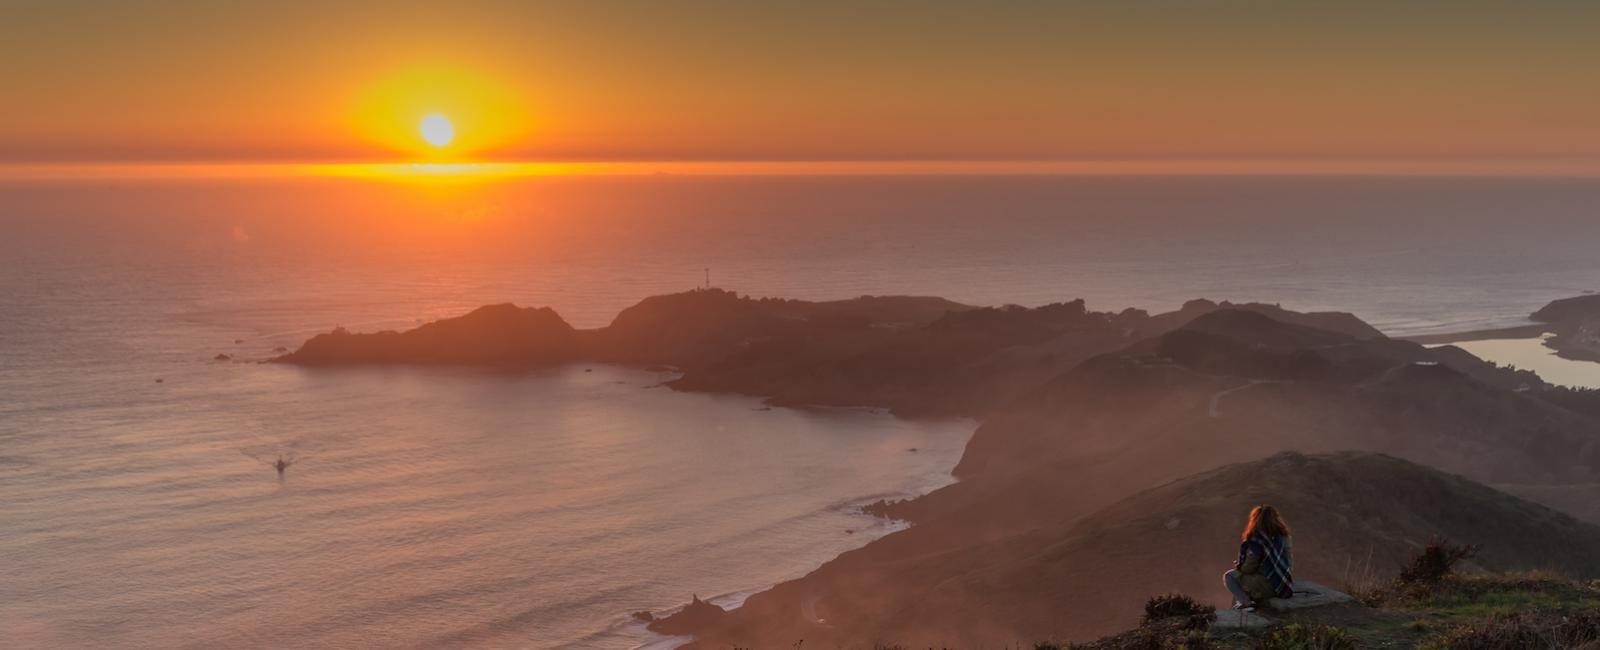 Gazing at the sunset from the Marin Headlands